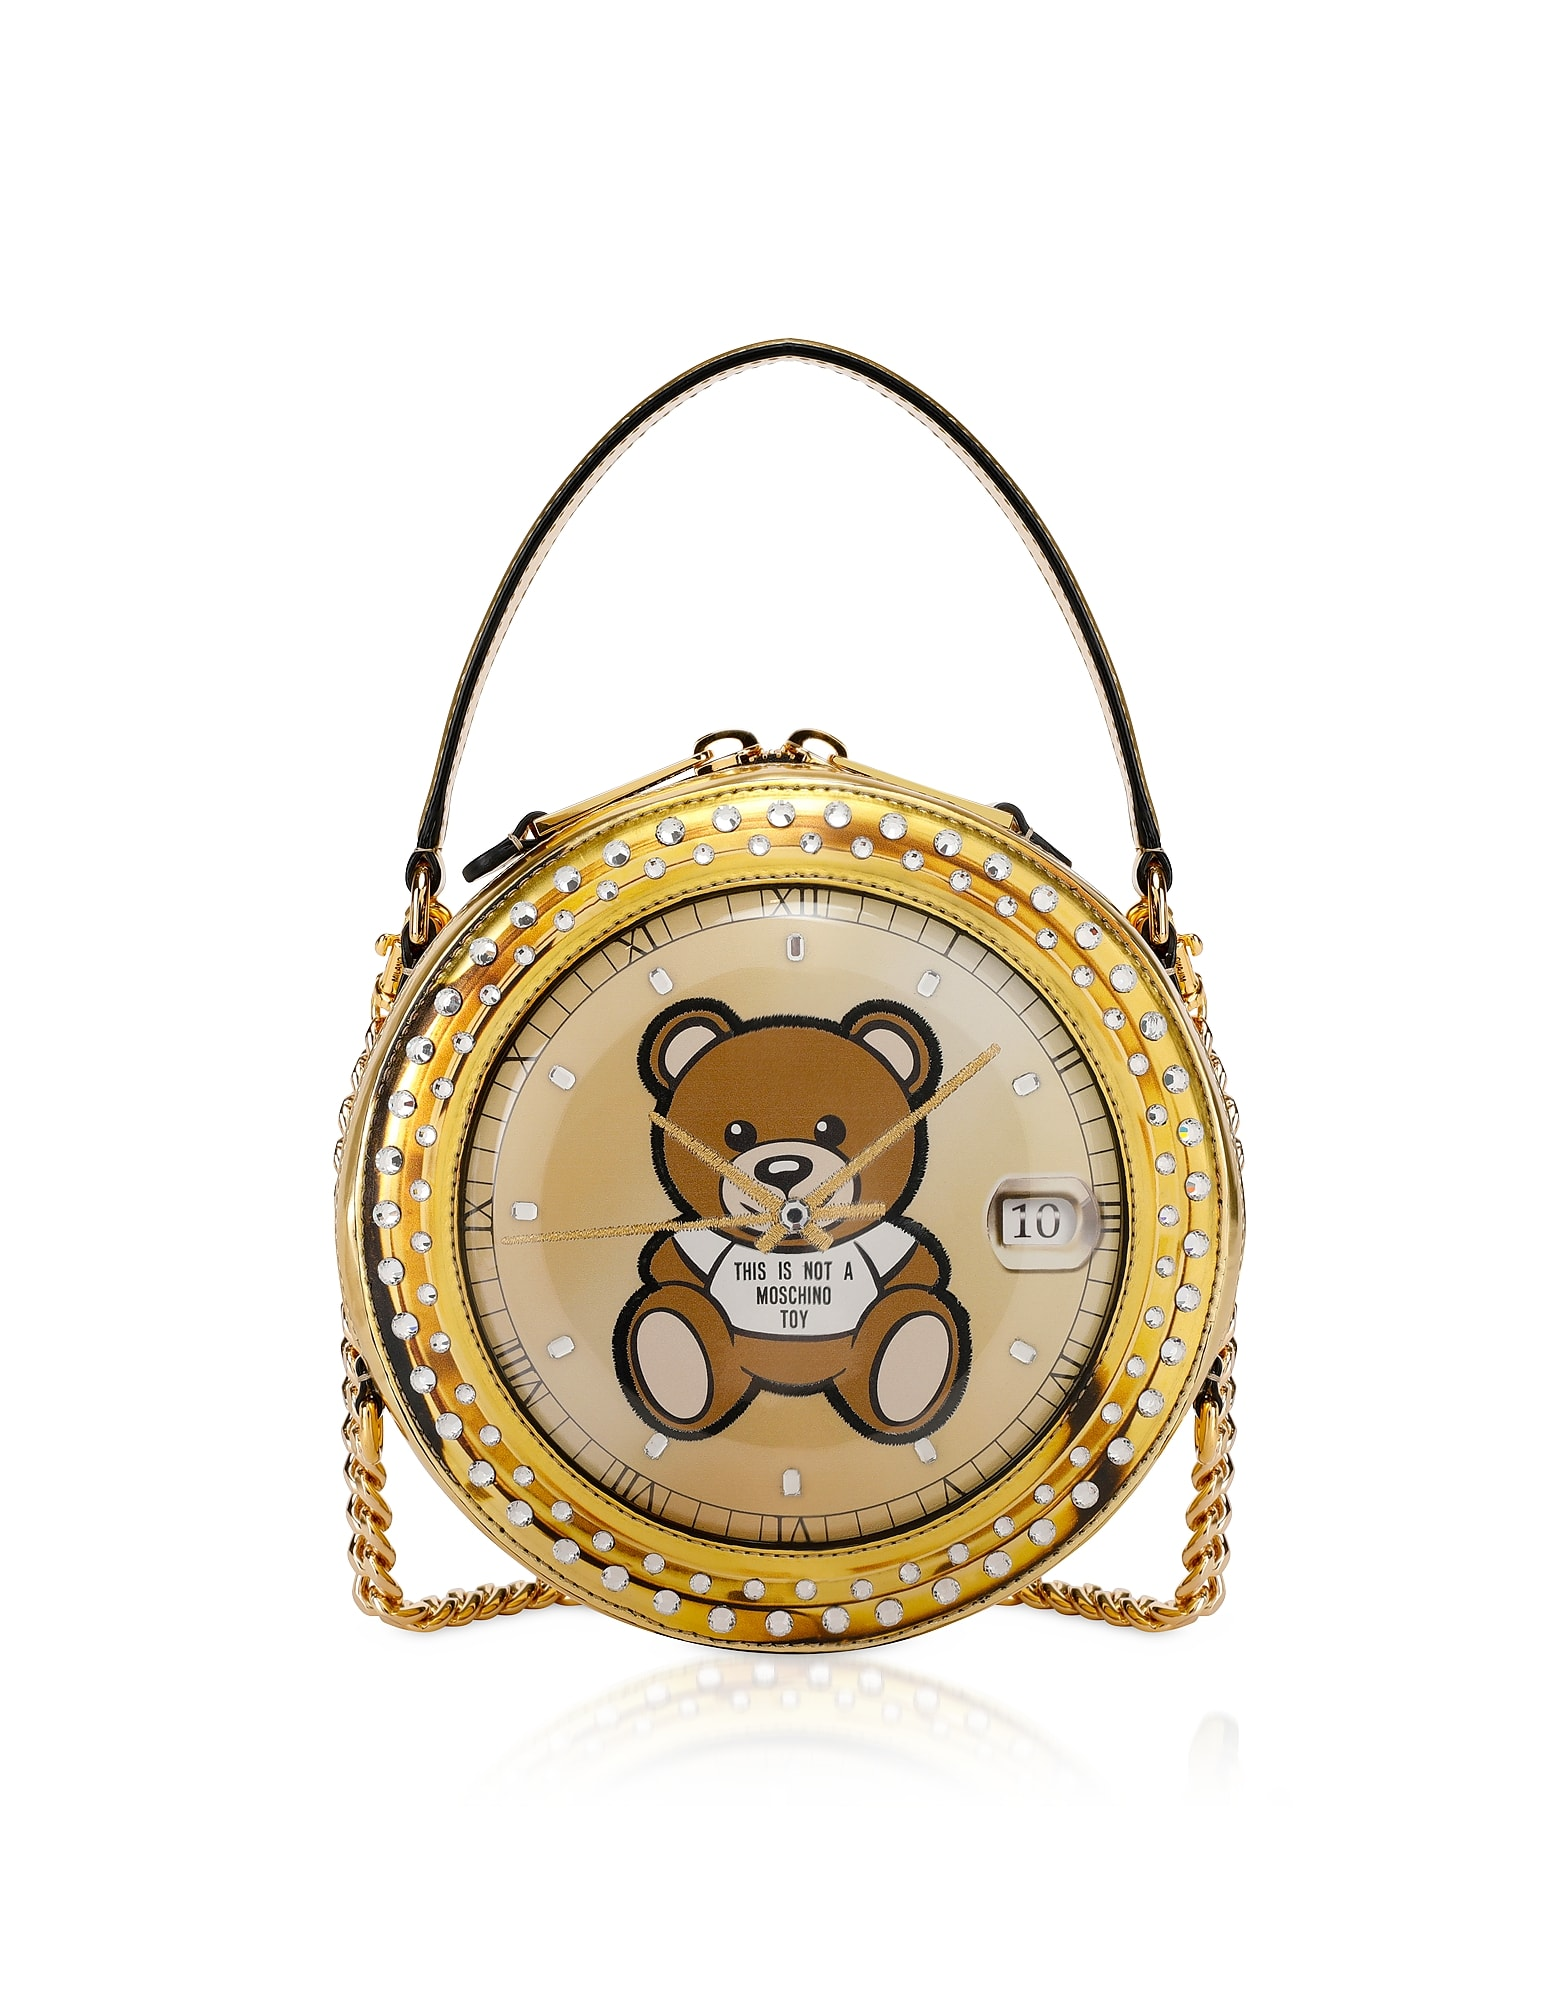 Moschino Pants CLOCK W/MOSCHINO TOY GOLD ROUND BAG